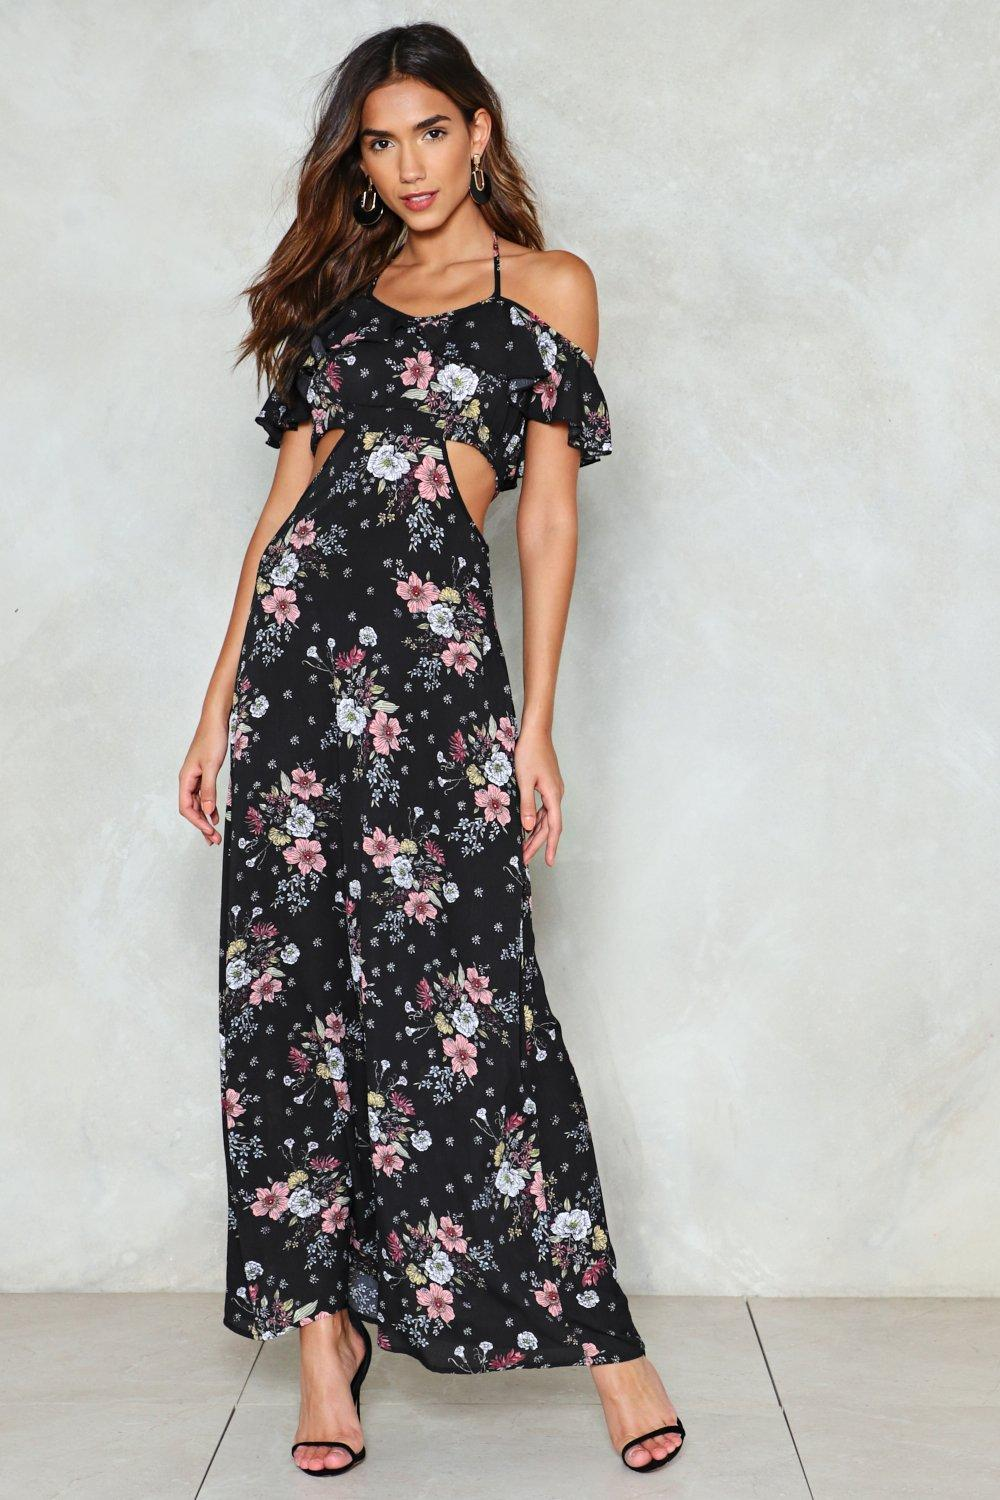 63d1b9bc95602 Growing on Me Floral Maxi Dress | Shop Clothes at Nasty Gal!